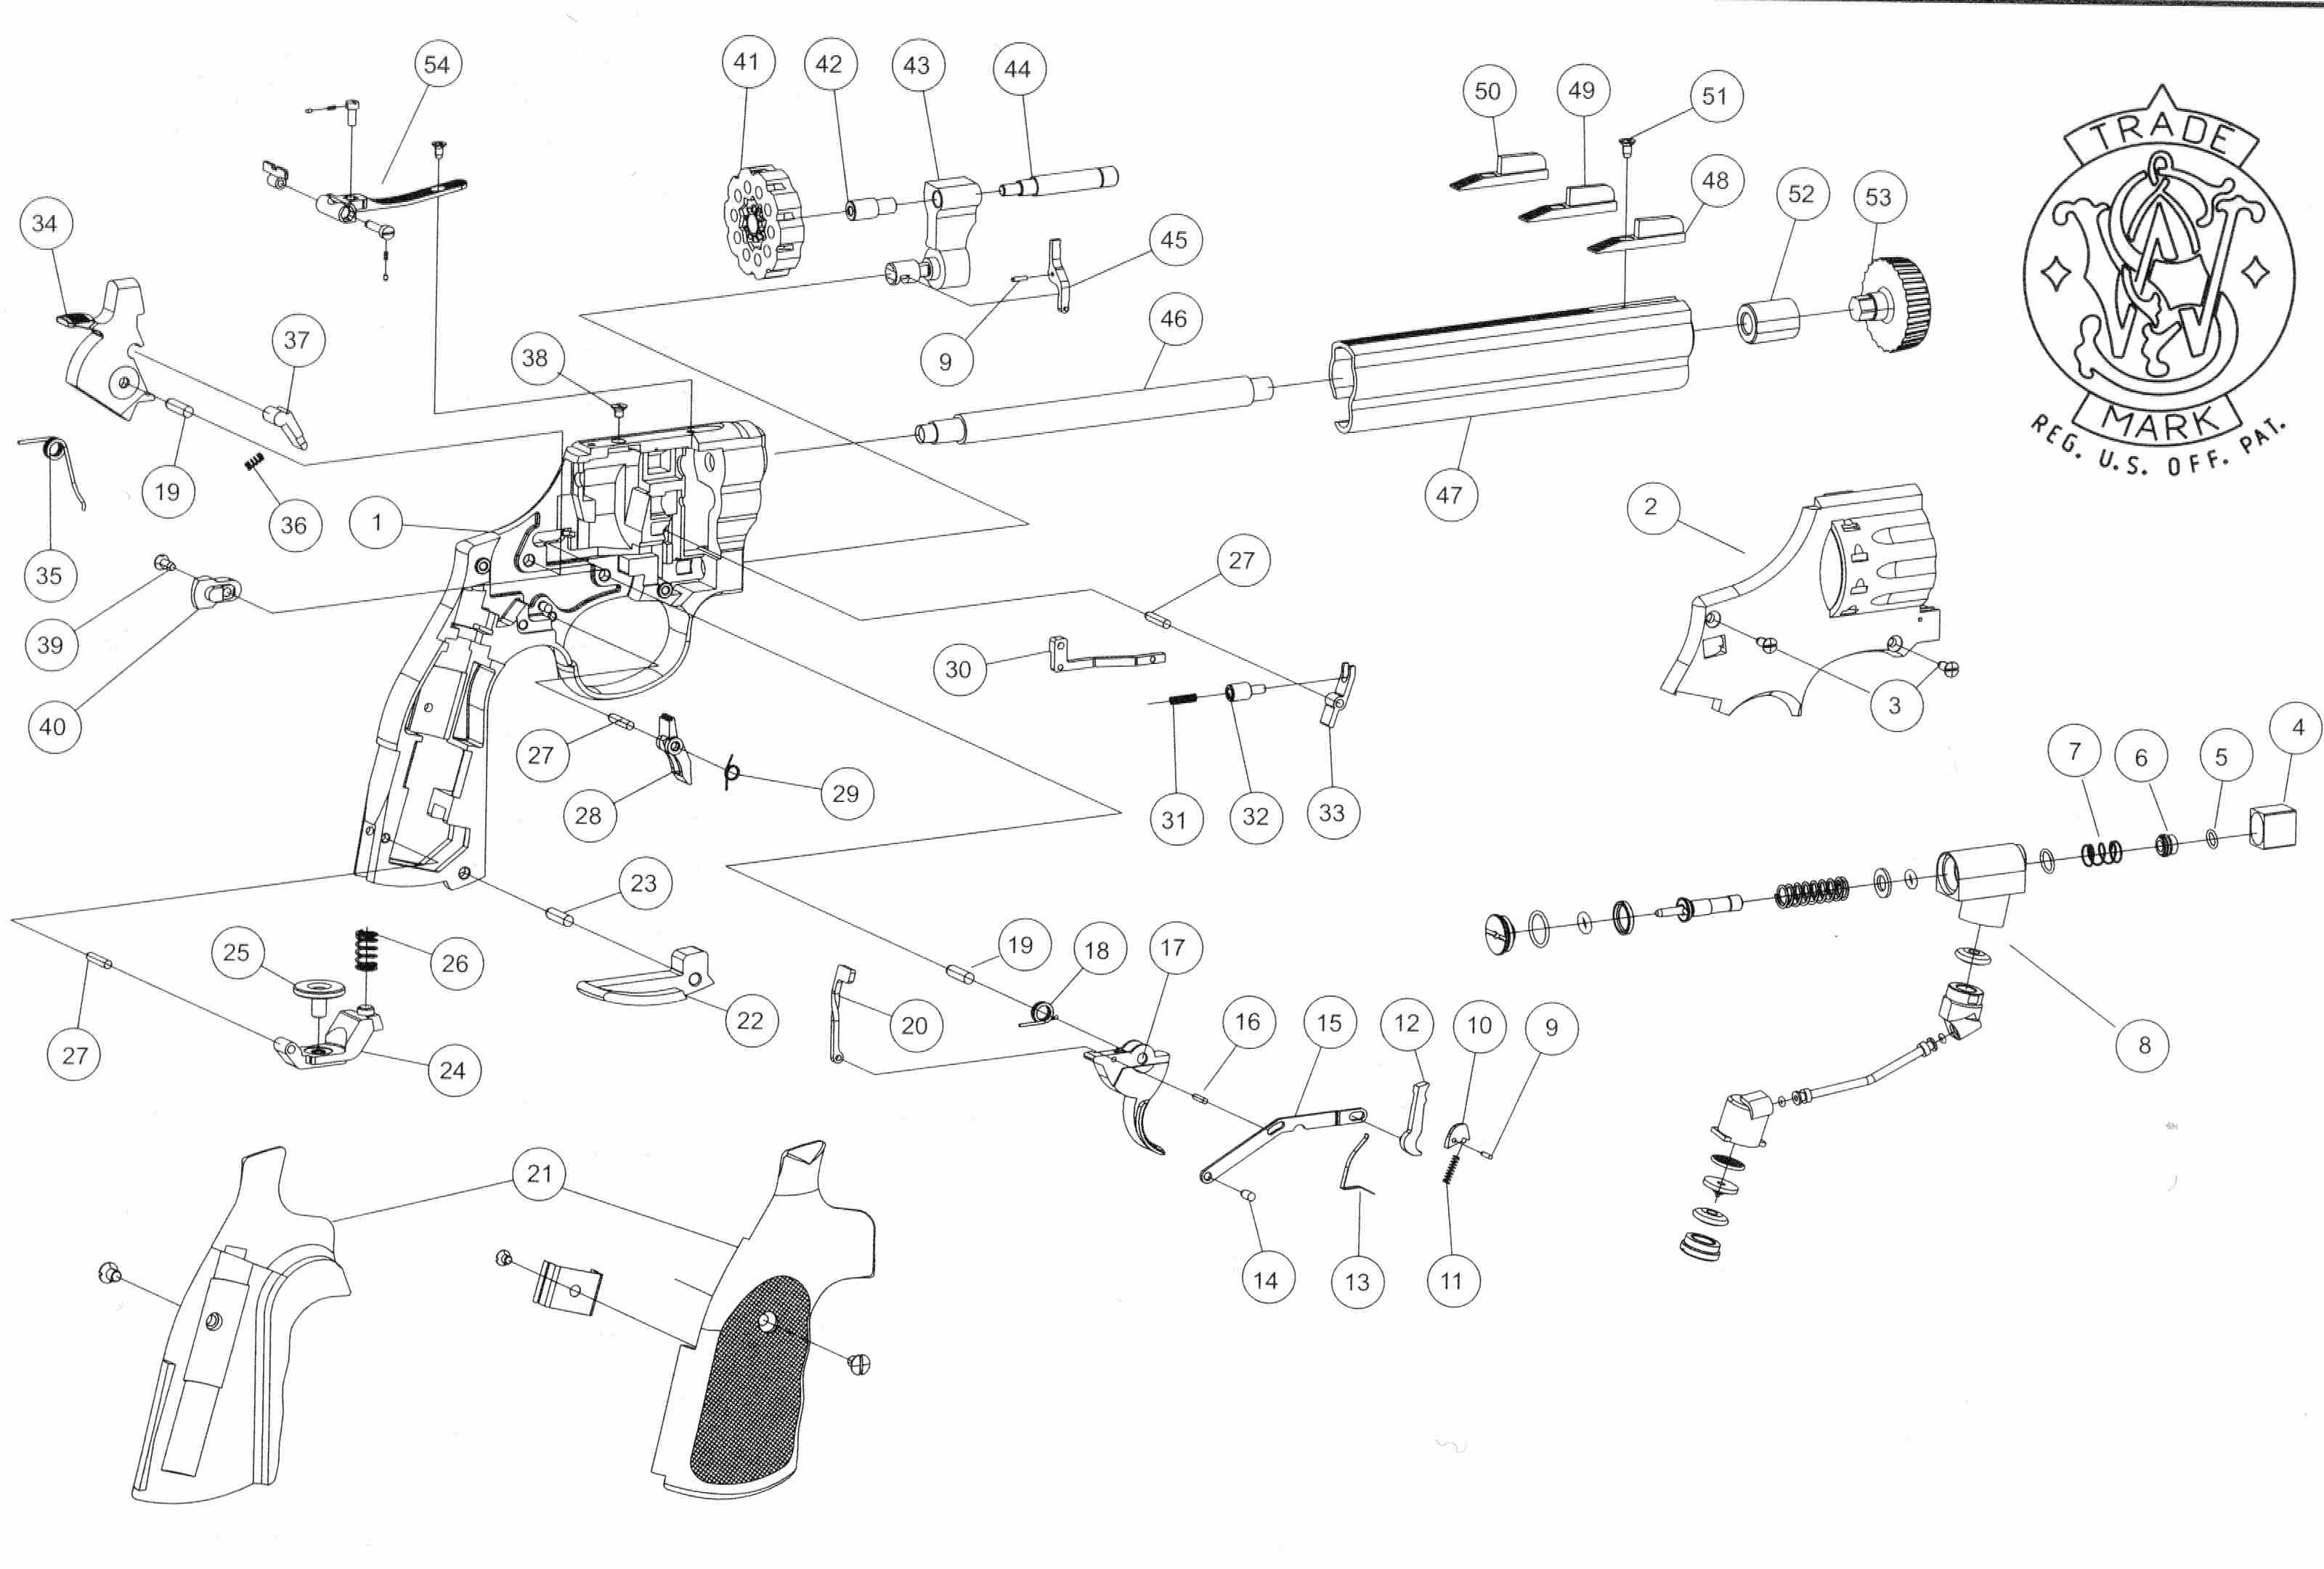 sig sauer 1911 parts diagram johnson controls a419 wiring mosquito schematic p220 elsavadorla